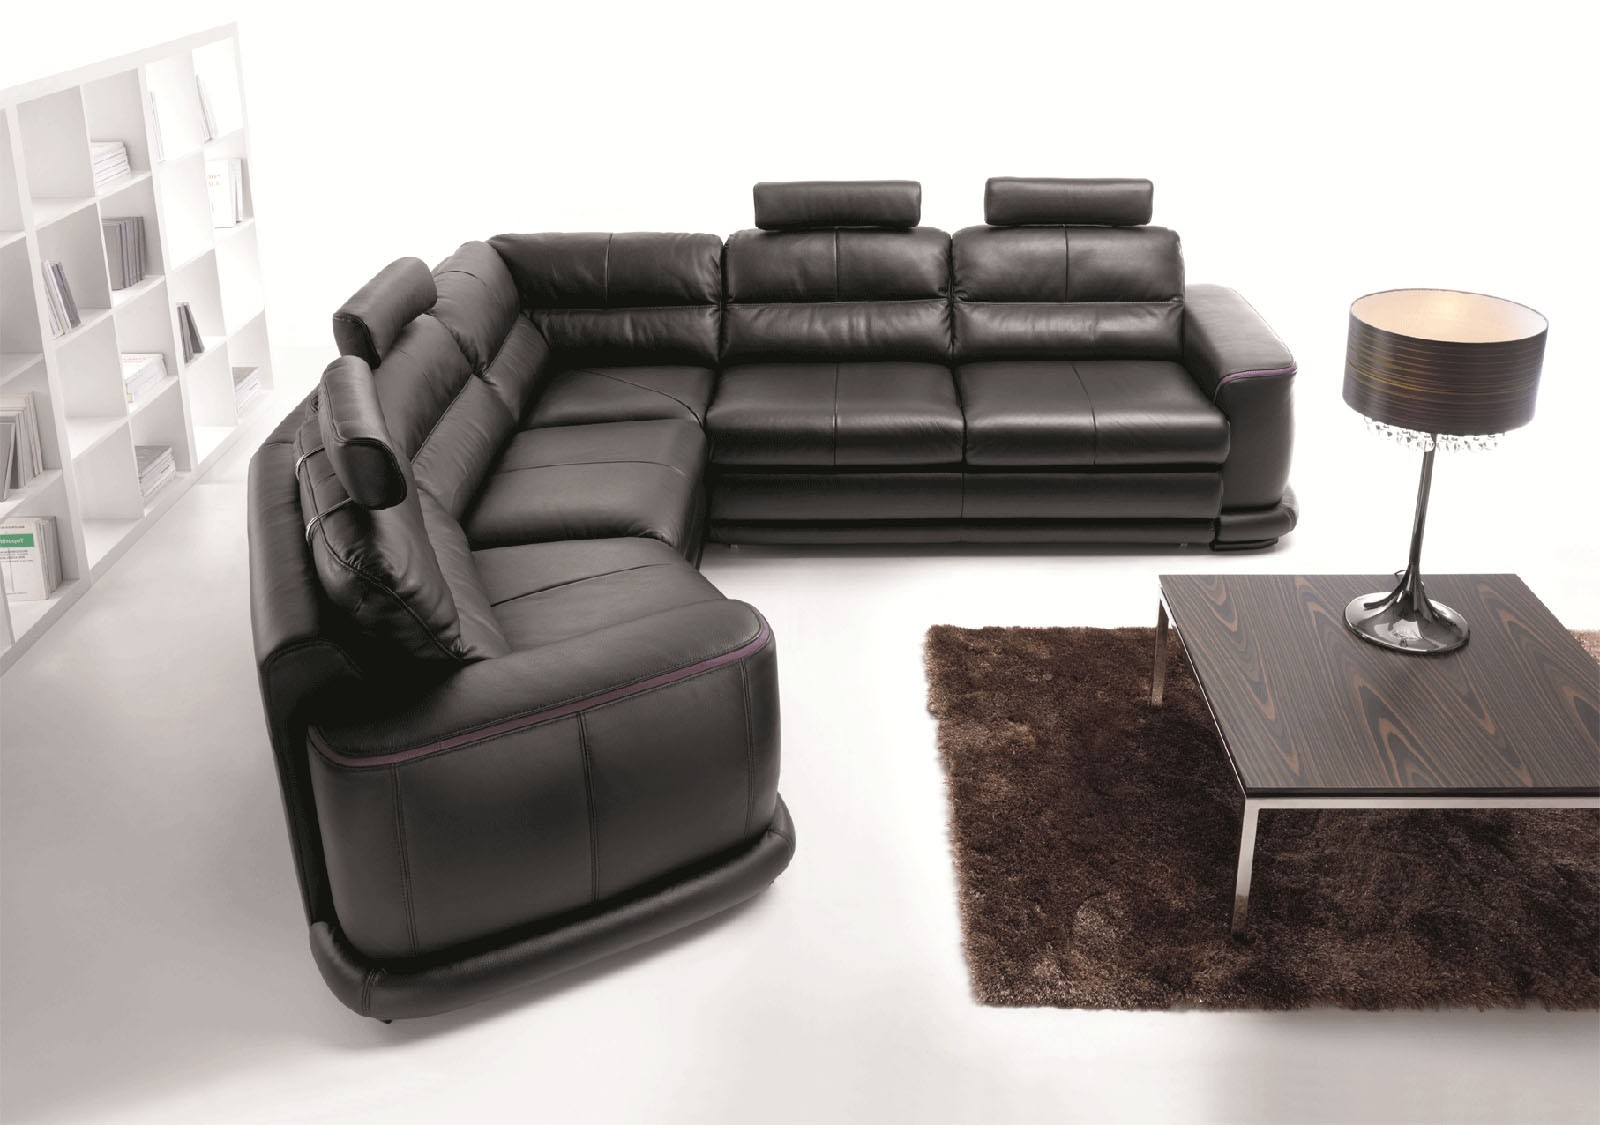 Esf Camino Sectional Sofa Bed In Black Leather